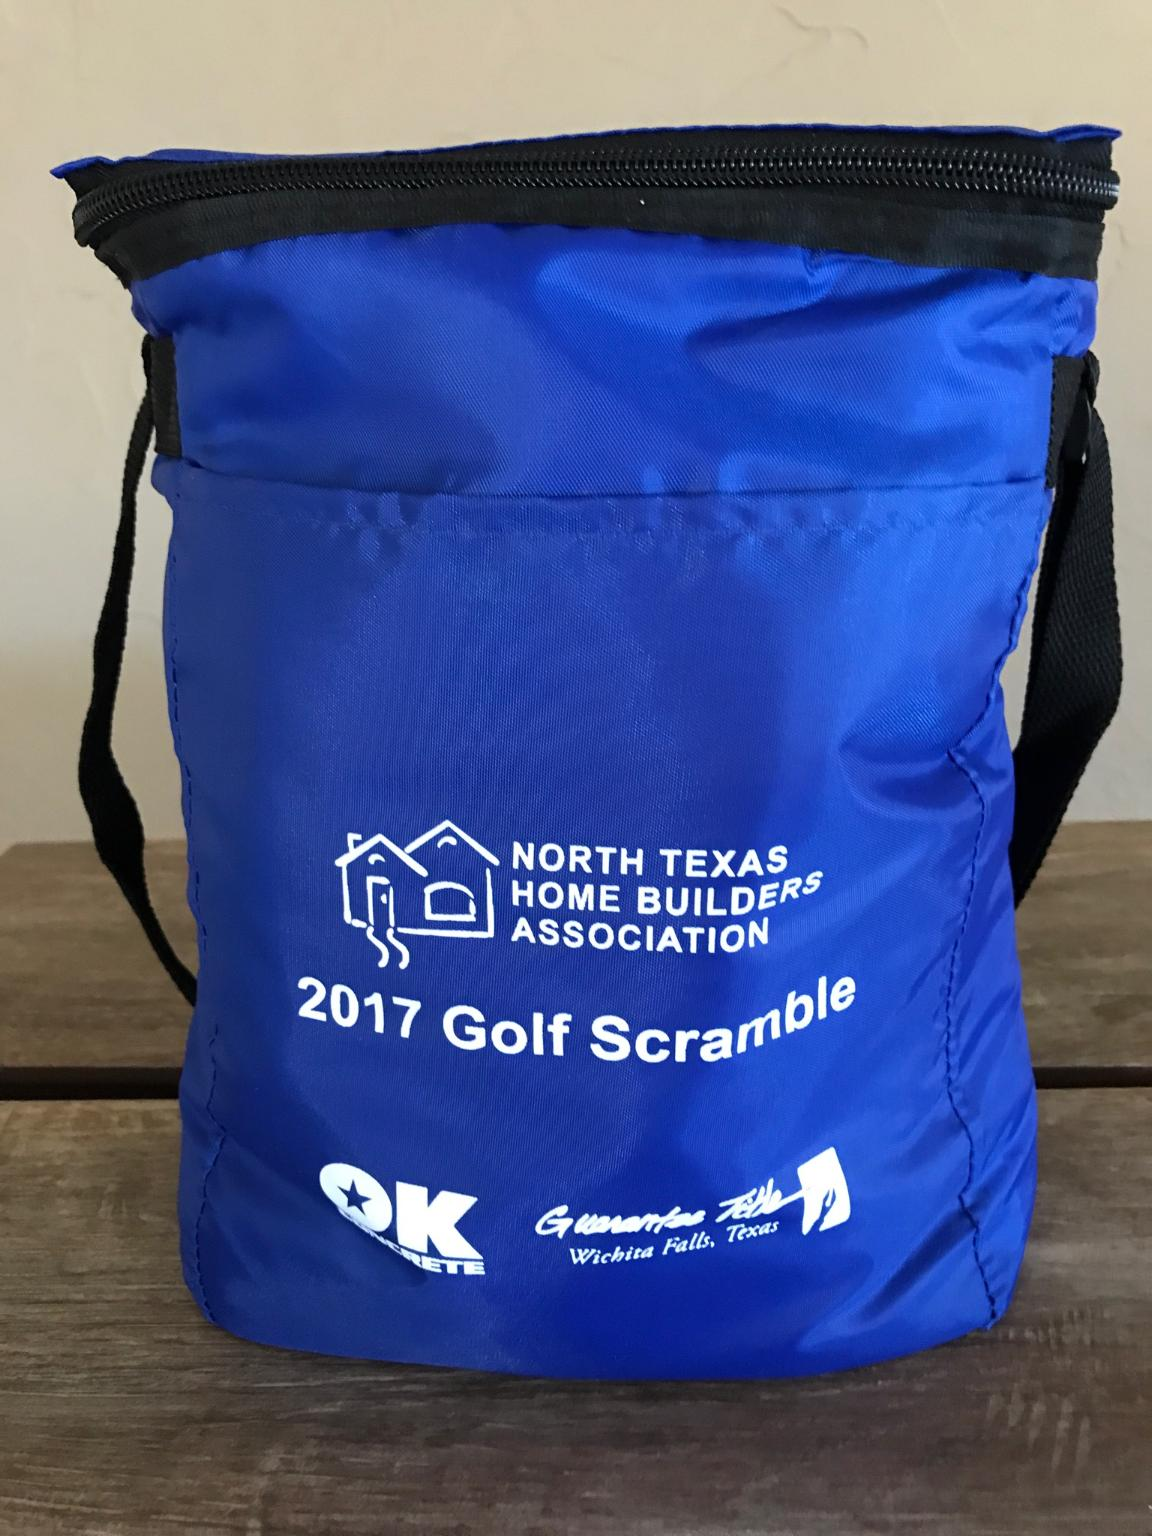 8th annual golf tournament successful for the association north golf tees donated by oncor and strucsure home warranty chap stick pens key chains night lights and coozies donated by oncor pilgrim bank